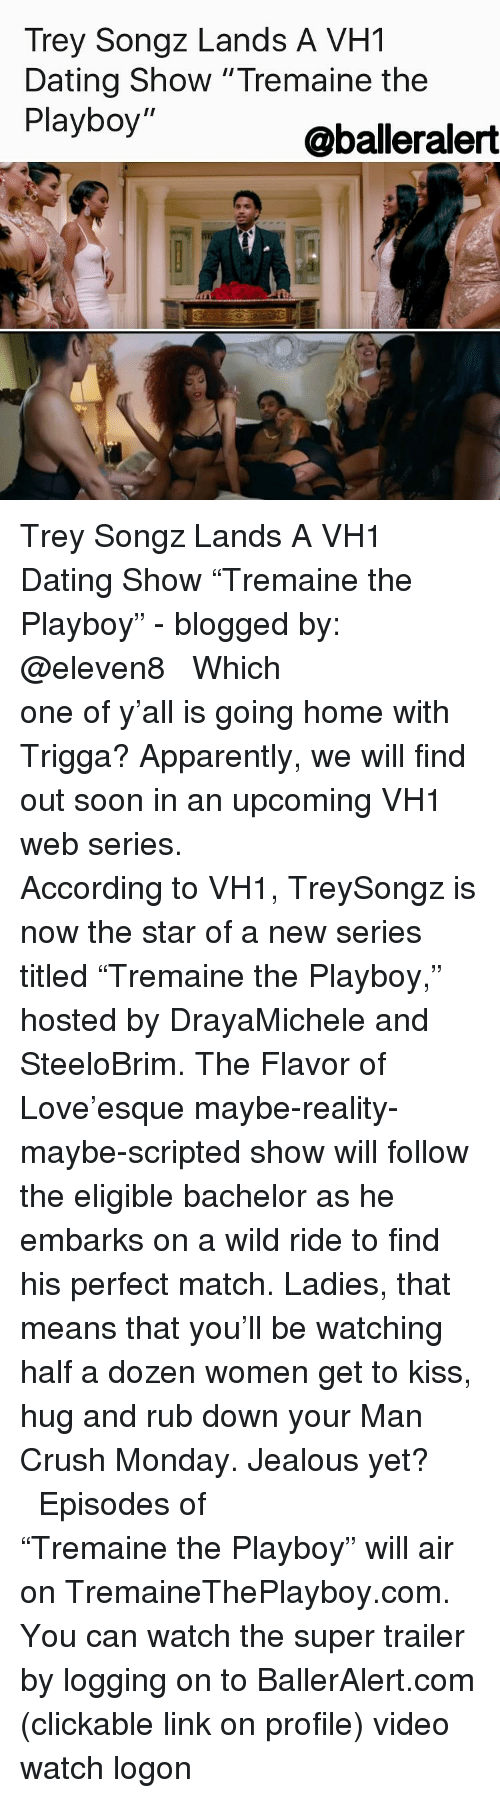 """Memes, Trey Songz, and Man Crush Monday: Trey Songz Lands A VH1  Dating Show """"Tremaine the  Playboy  @balderalert Trey Songz Lands A VH1 Dating Show """"Tremaine the Playboy"""" - blogged by: @eleven8 ⠀⠀⠀⠀⠀⠀⠀⠀⠀ ⠀⠀⠀⠀⠀⠀⠀⠀⠀ Which one of y'all is going home with Trigga? Apparently, we will find out soon in an upcoming VH1 web series. ⠀⠀⠀⠀⠀⠀⠀⠀⠀ ⠀⠀⠀⠀⠀⠀⠀⠀⠀ According to VH1, TreySongz is now the star of a new series titled """"Tremaine the Playboy,"""" hosted by DrayaMichele and SteeloBrim. The Flavor of Love'esque maybe-reality-maybe-scripted show will follow the eligible bachelor as he embarks on a wild ride to find his perfect match. Ladies, that means that you'll be watching half a dozen women get to kiss, hug and rub down your Man Crush Monday. Jealous yet? ⠀⠀⠀⠀⠀⠀⠀⠀⠀ ⠀⠀⠀⠀⠀⠀⠀⠀⠀ Episodes of """"Tremaine the Playboy"""" will air on TremaineThePlayboy.com. You can watch the super trailer by logging on to BallerAlert.com (clickable link on profile) video watch logon"""